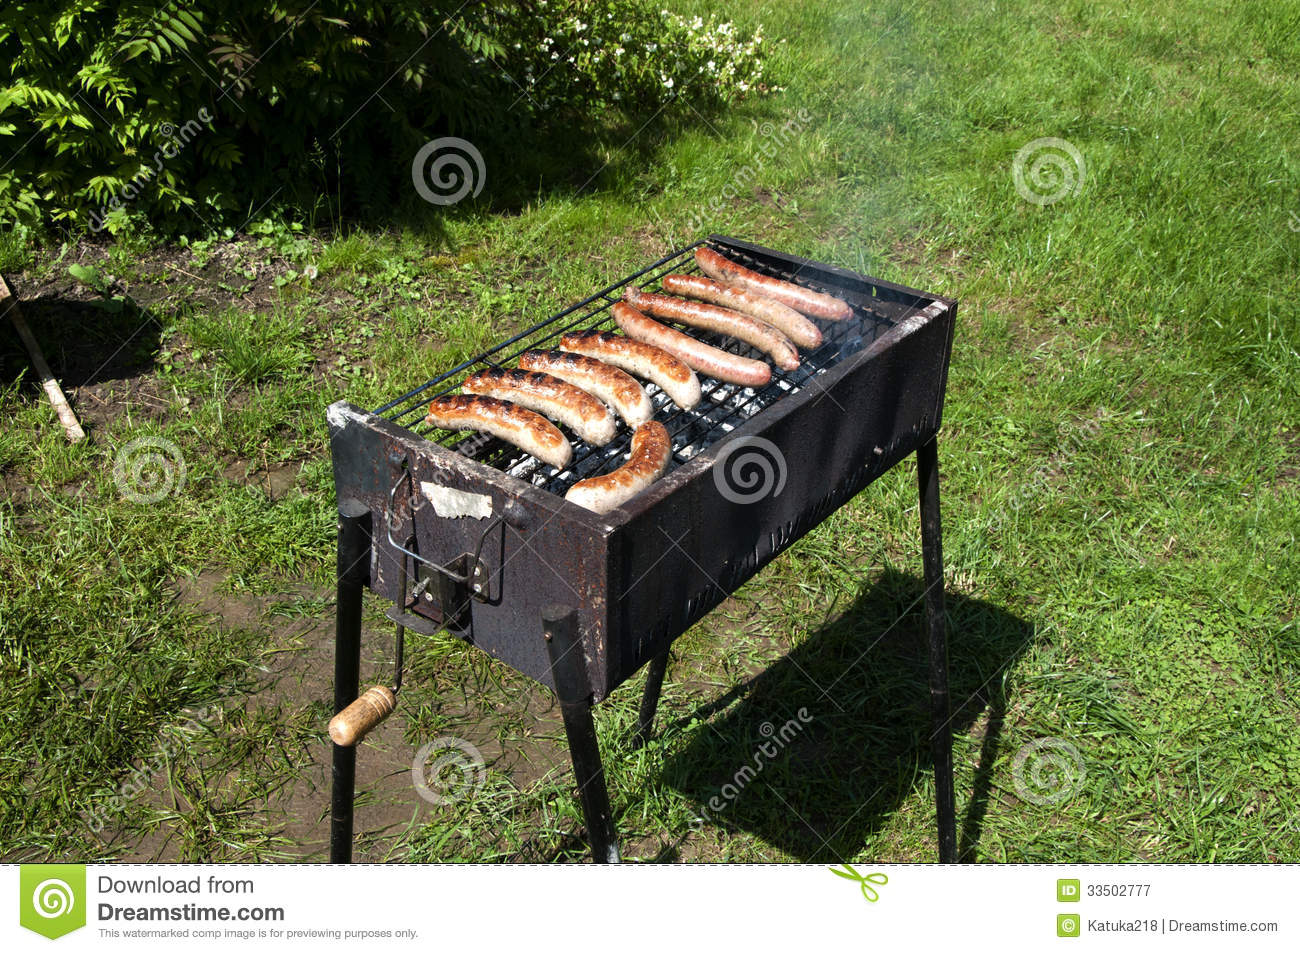 sausage grill in the backyard